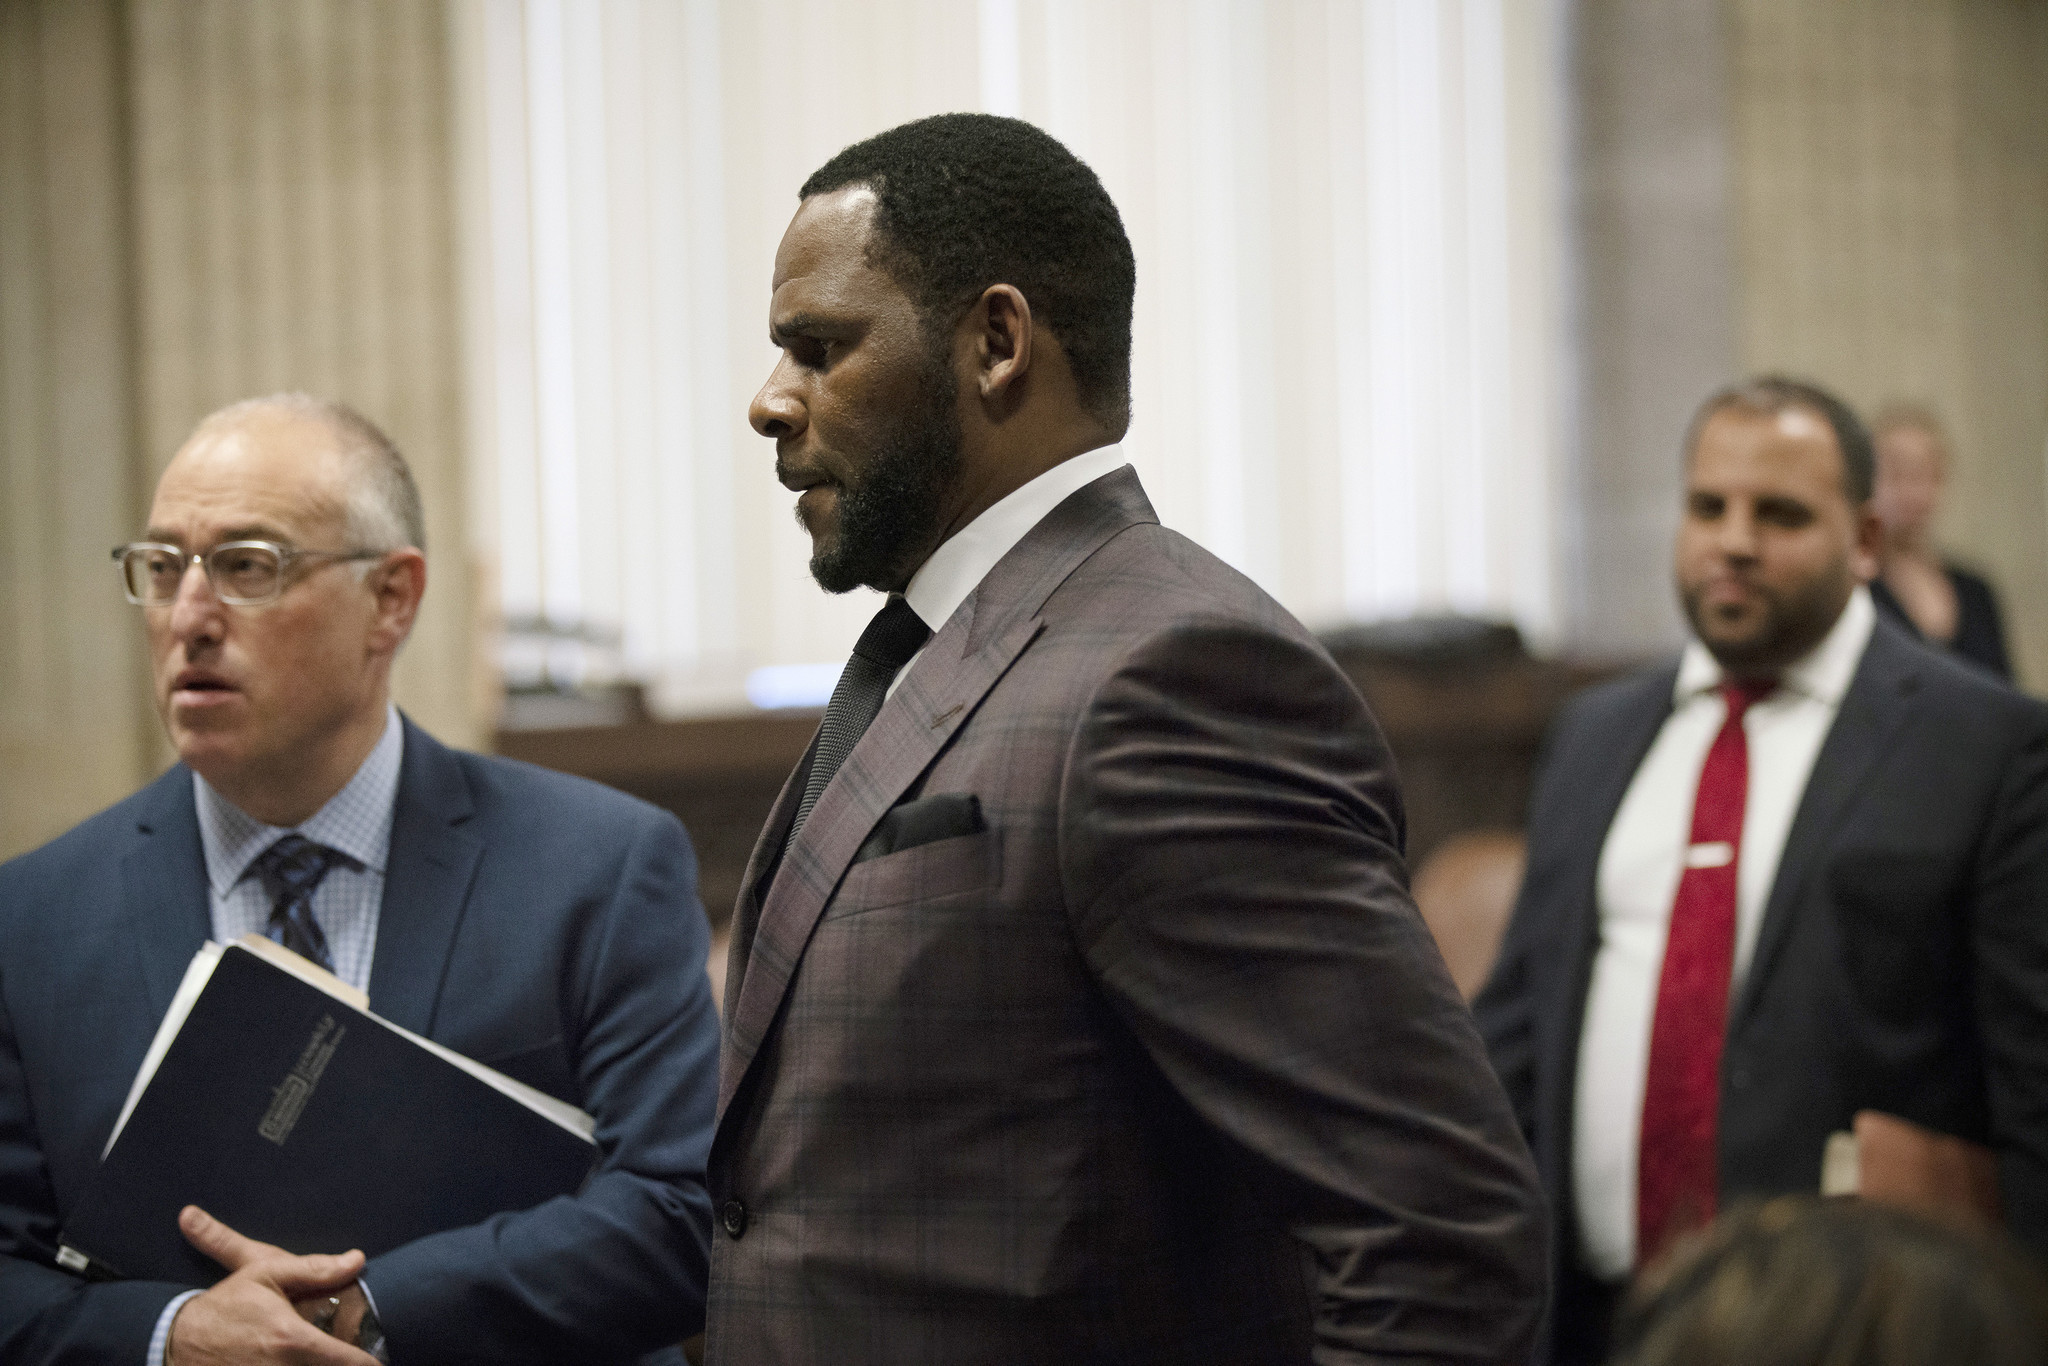 Singer R. Kelly charged in Cook County with aggravated criminal sexual abuse